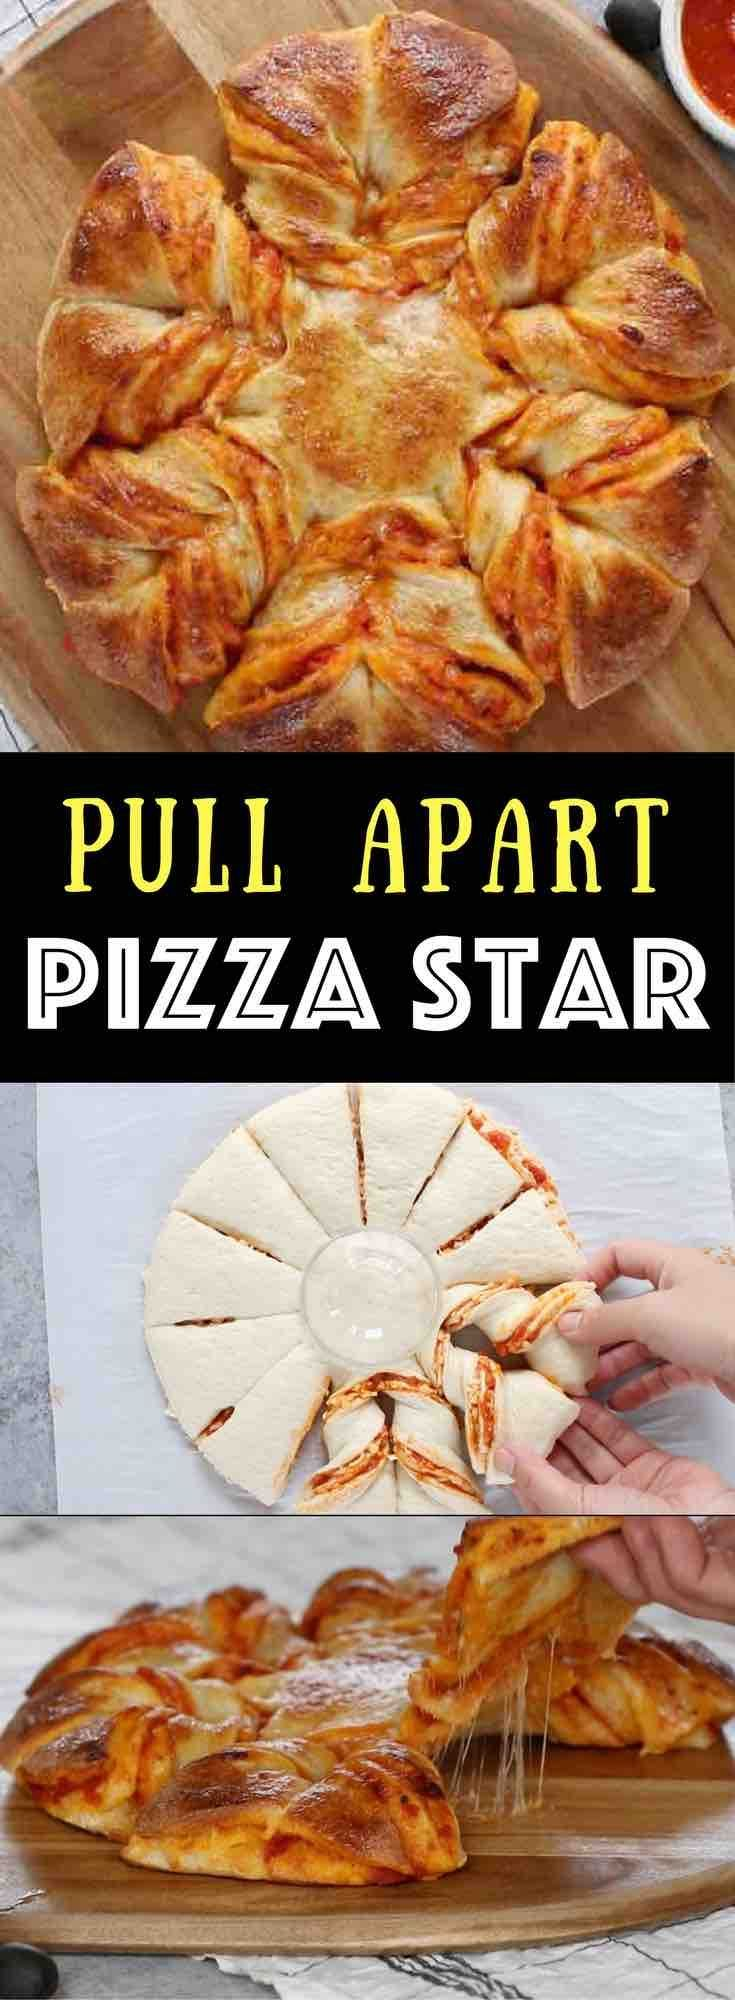 Pull Apart Pizza Star - warm, cheesy and pull apart Pizza! The easiest and fun pizza recipe that can be prepared in 5 minutes and ready in 20 minutes. All you need is only 5 ingredients: refrigerated pizza dough, marinara sauce, shredded mozzarella, egg and water. The perfect snack, lunch or quick dinner. Fun for game day too, and you will wow your guests! Quick and easy recipe. Party food, easy dinner. Video recipe. | Tipbuzz.com